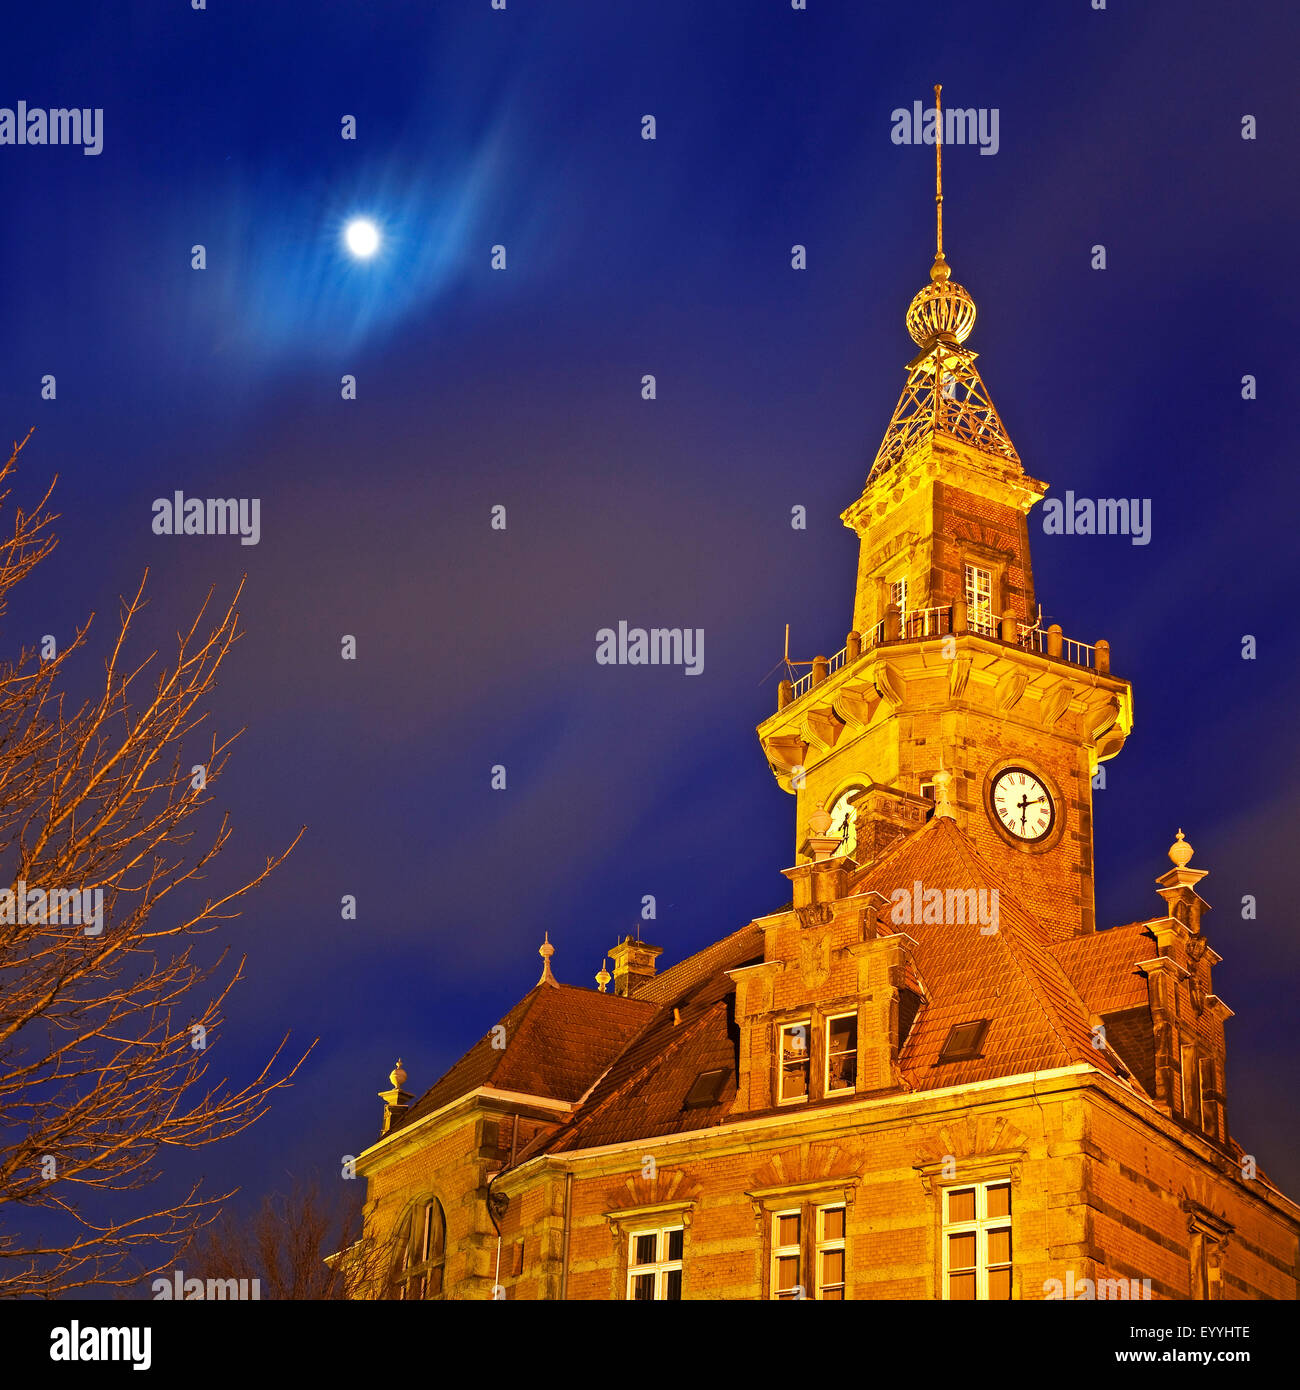 Old Port Authority Building in the evening, Germany, North Rhine-Westphalia, Ruhr Area, Dortmund - Stock Image